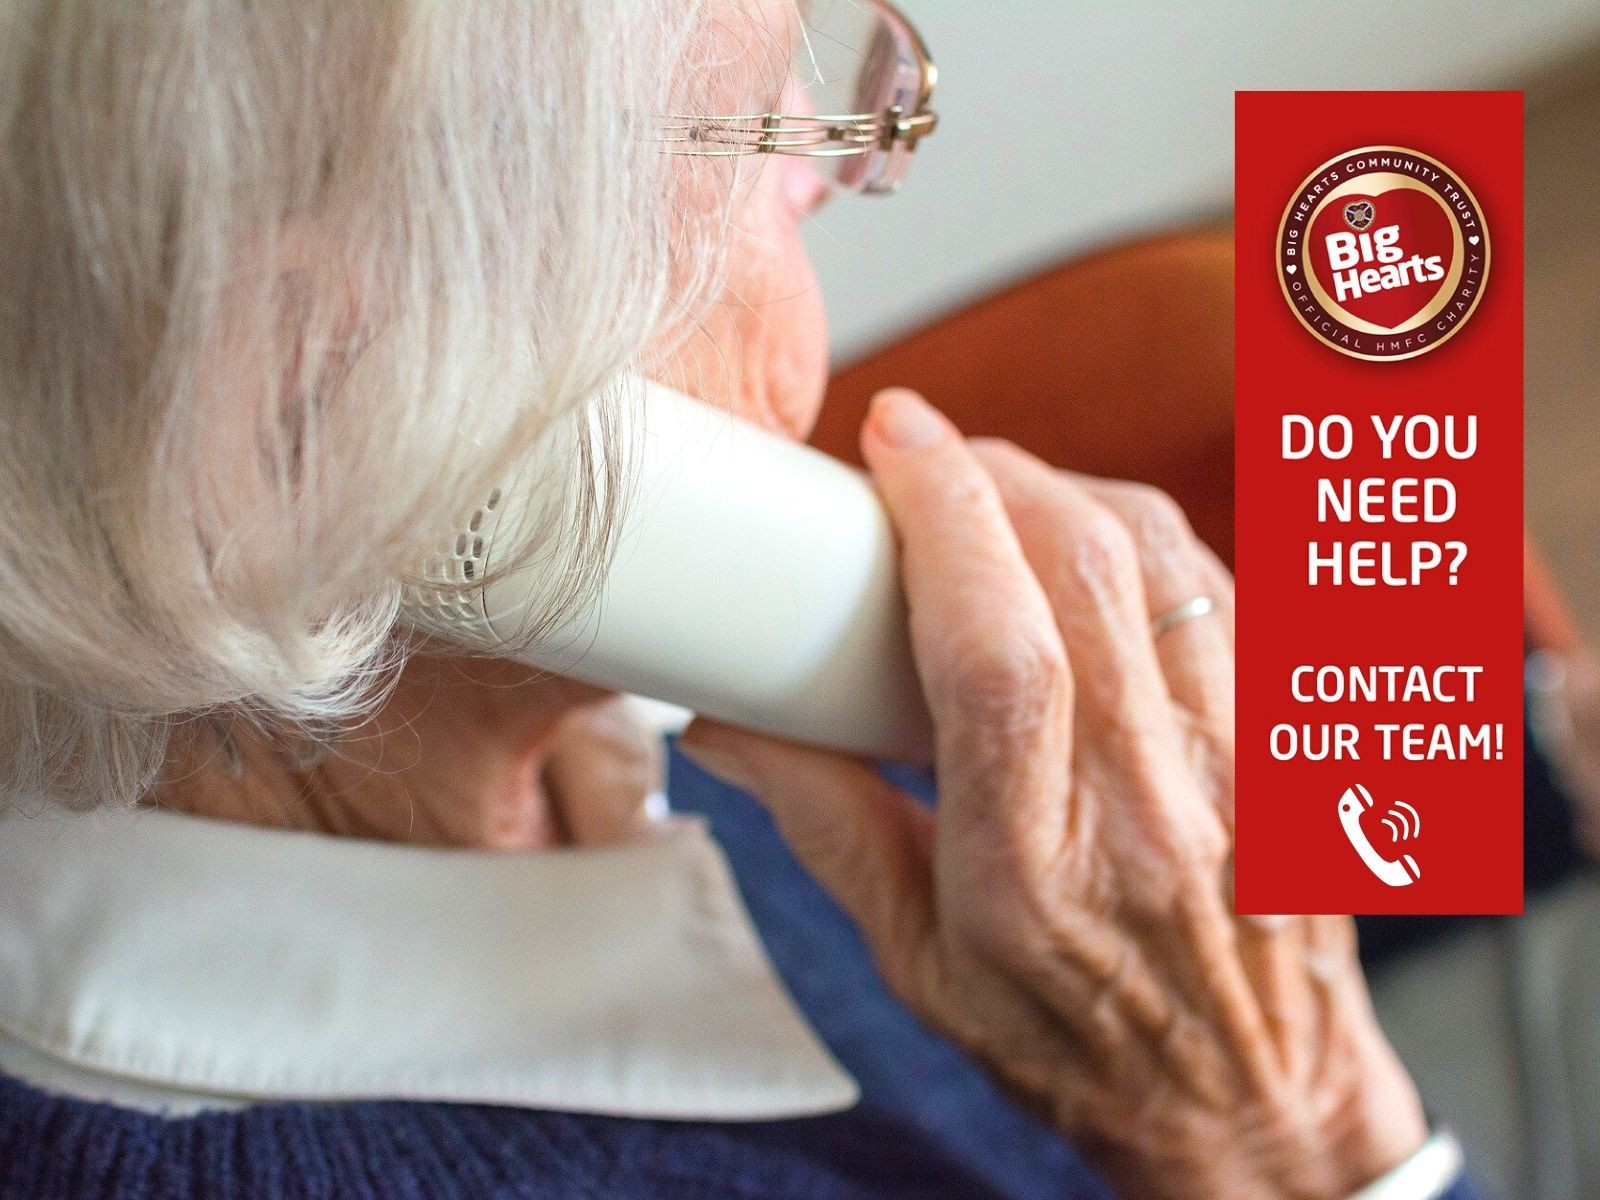 » Big Hearts launching helplines to maintain vital support amid Covid-19